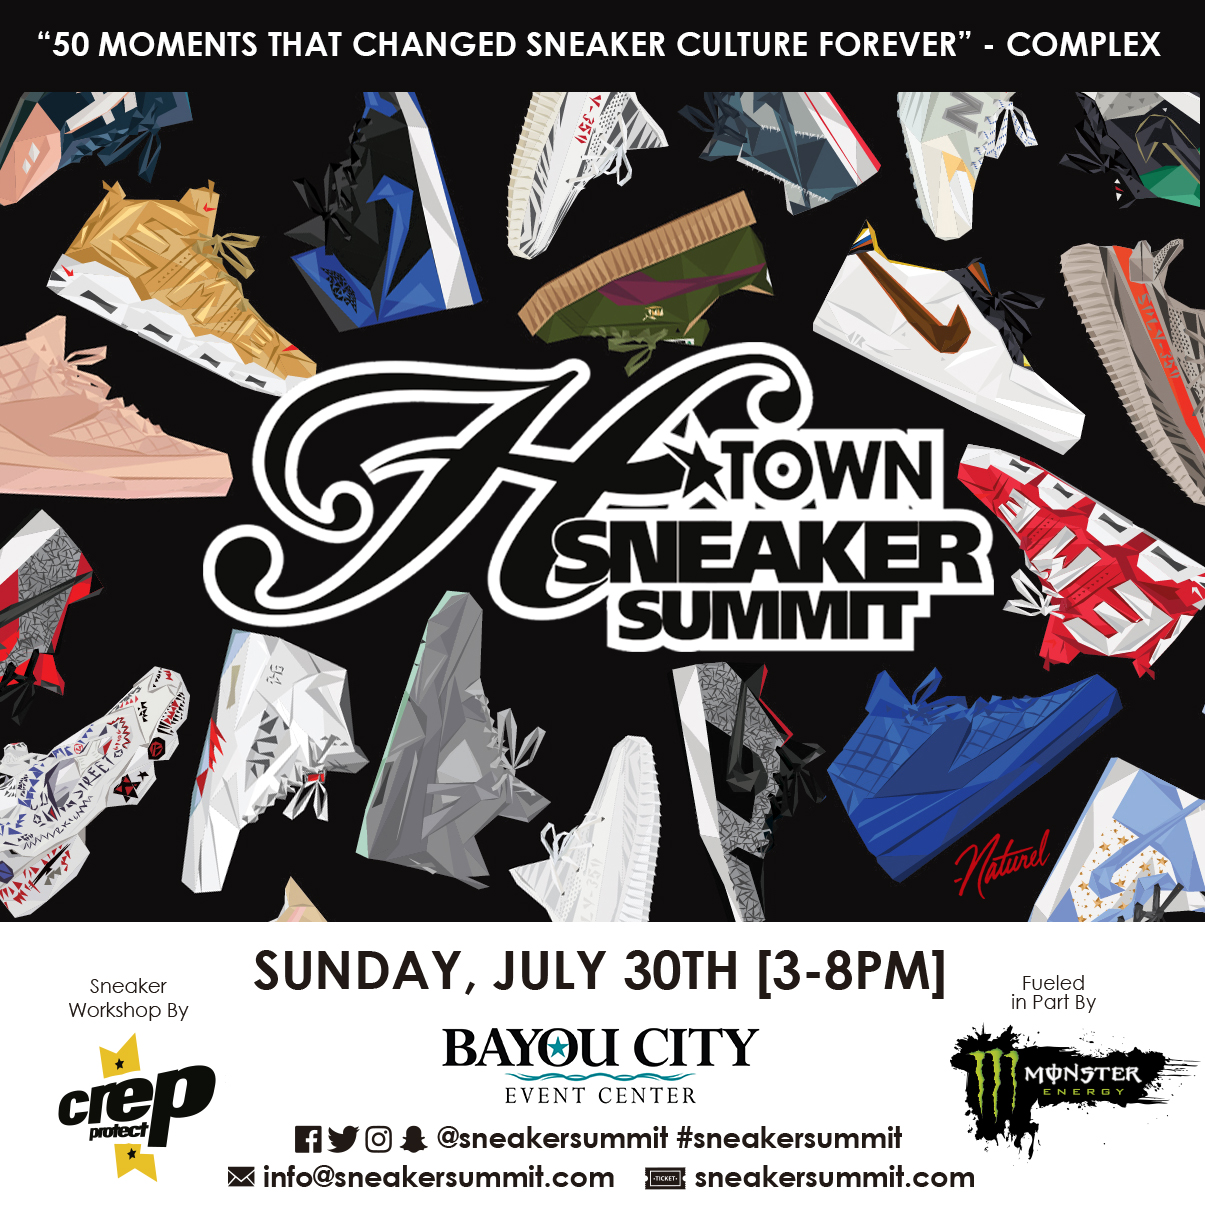 H-Town Sneaker Summit Summer 17 at Bayou City Event Center on Sunday, July 30, 2017 3-8PM